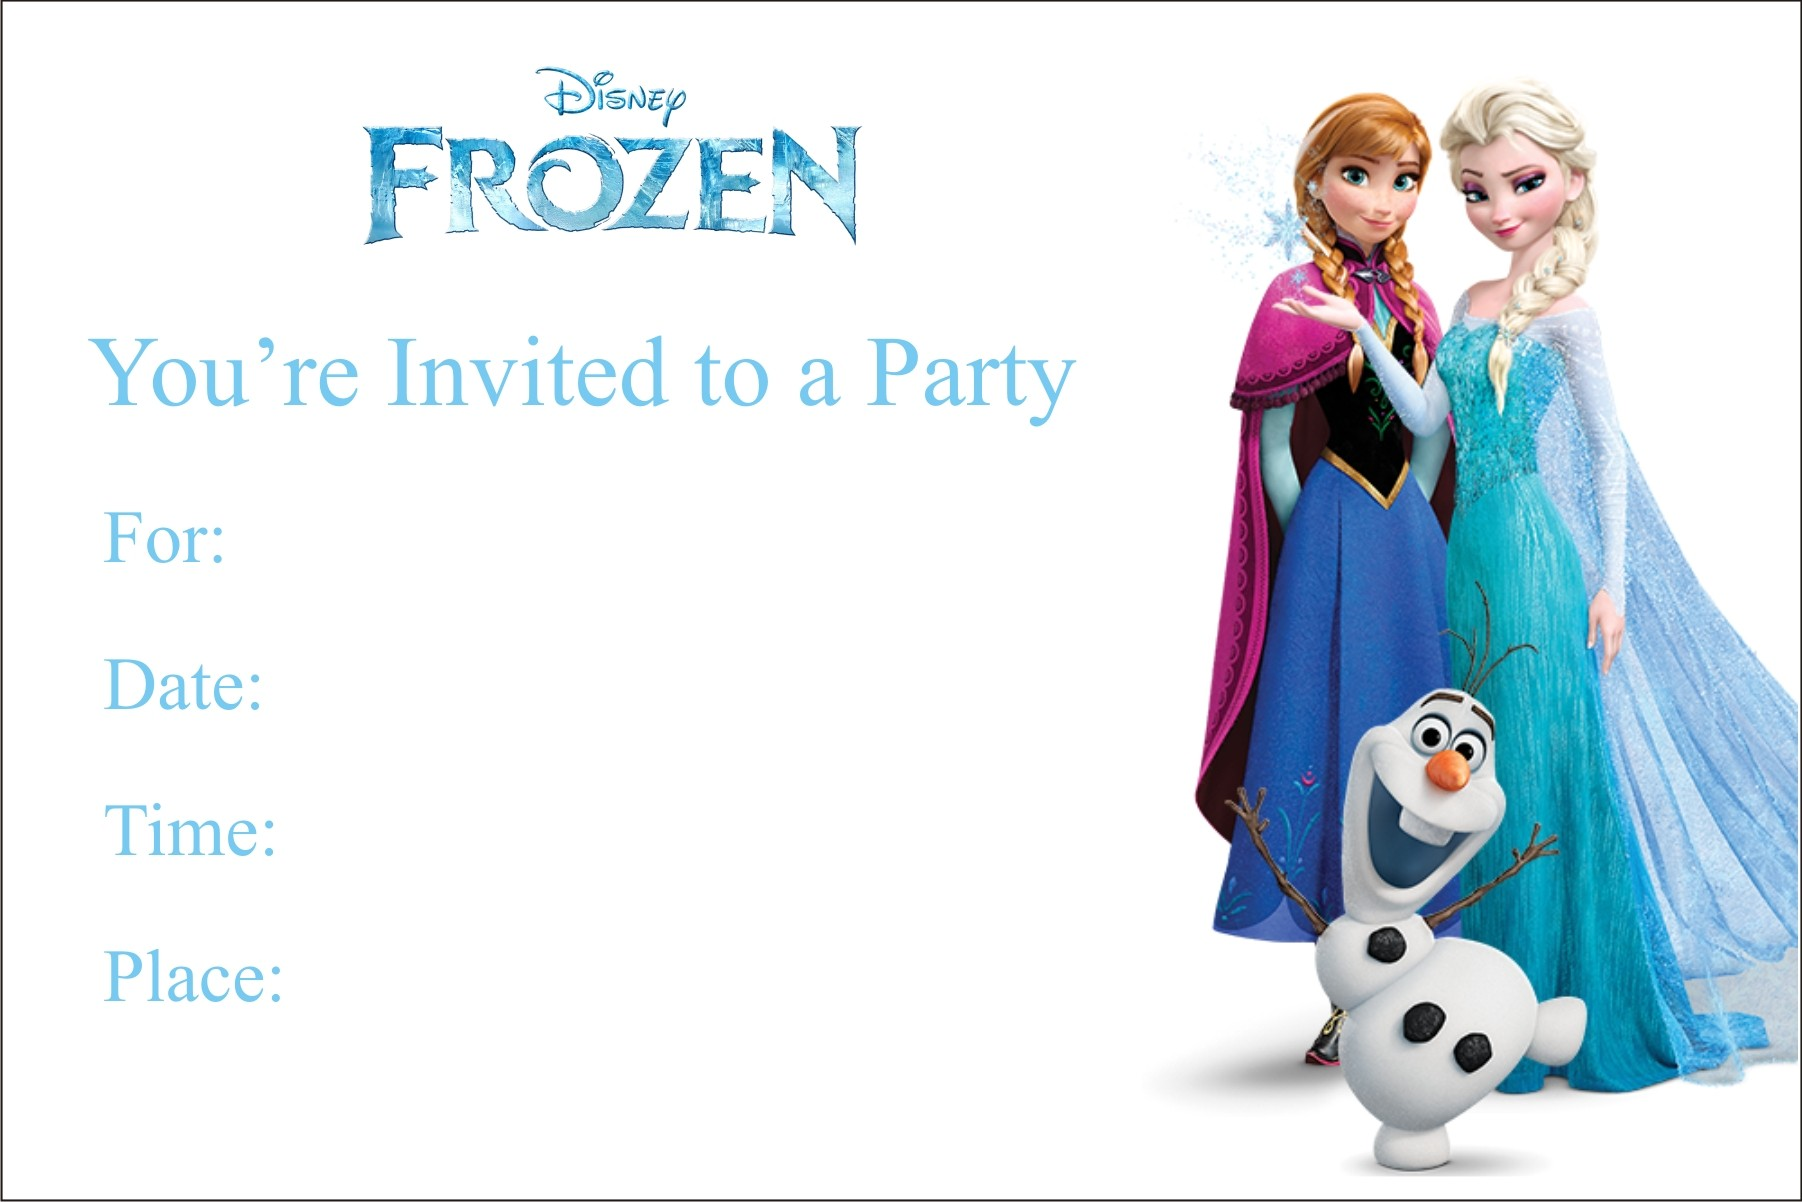 Frozen free printable birthday party invitation personalized party frozen free printable birthday party invitation filmwisefo Image collections